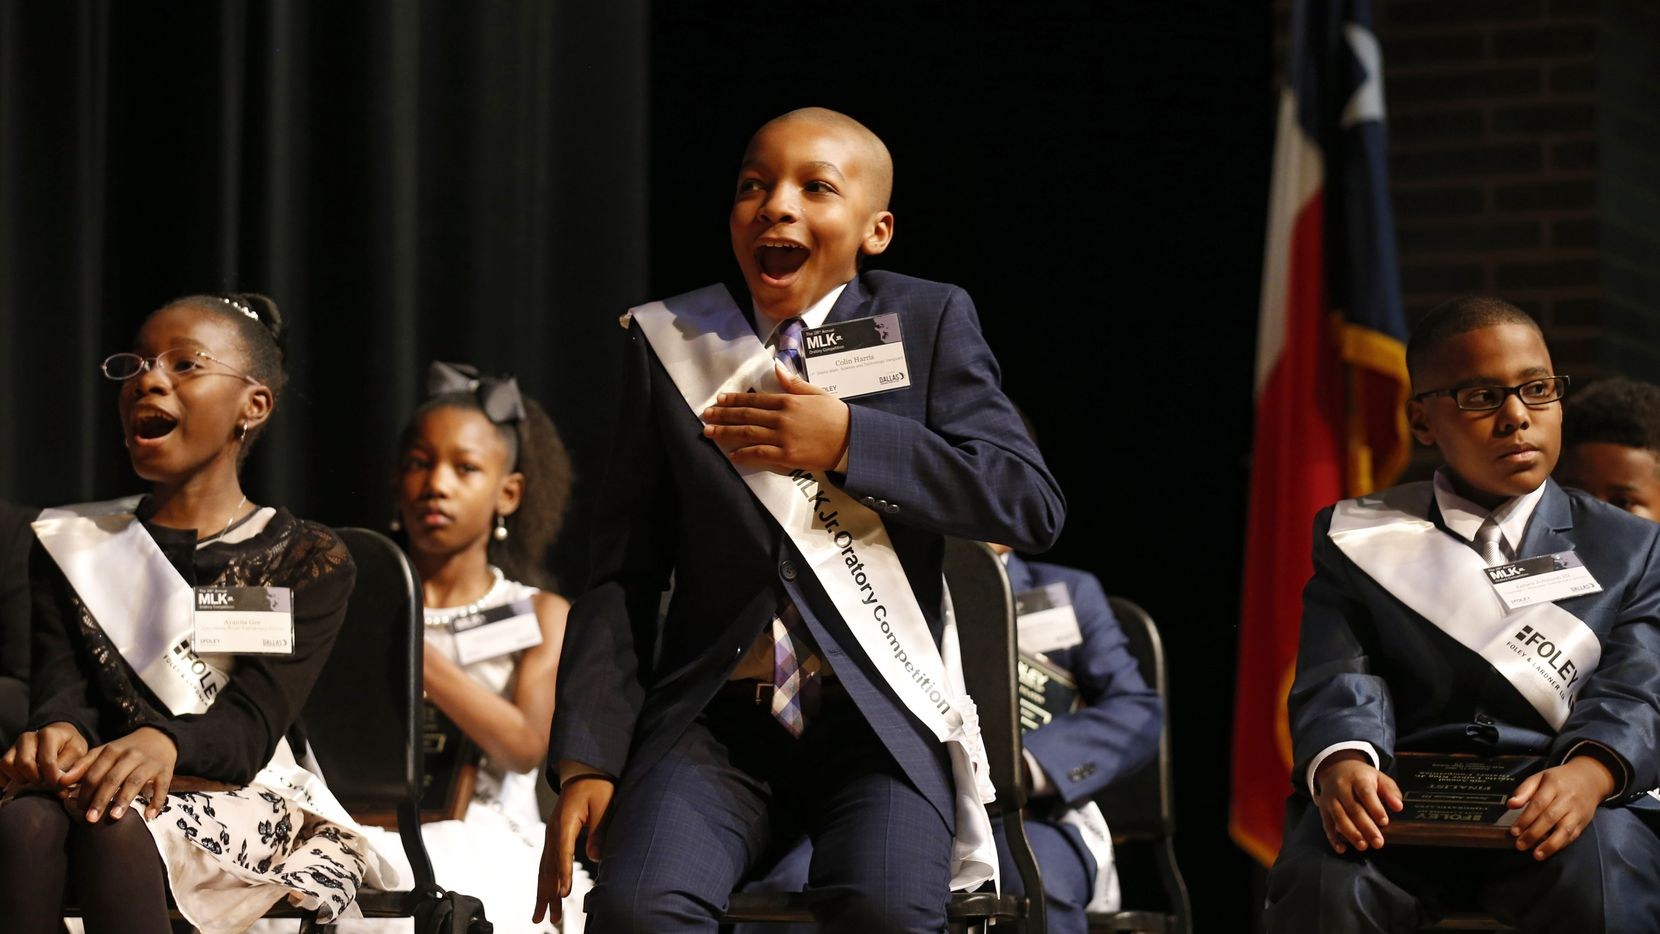 """Colin Harris of J.P. Starks Math, Science and Technology Vanguard reacts after his name is called to receive the first place award during the 28th annual MLK Jr. Oratory Competition at W.H. Adamson High School in Dallas on Friday, January 17, 2020. Eight students presented 3-5 minute speeches about the topic, """"What Would Dr. King's vision be for America in 2020."""""""